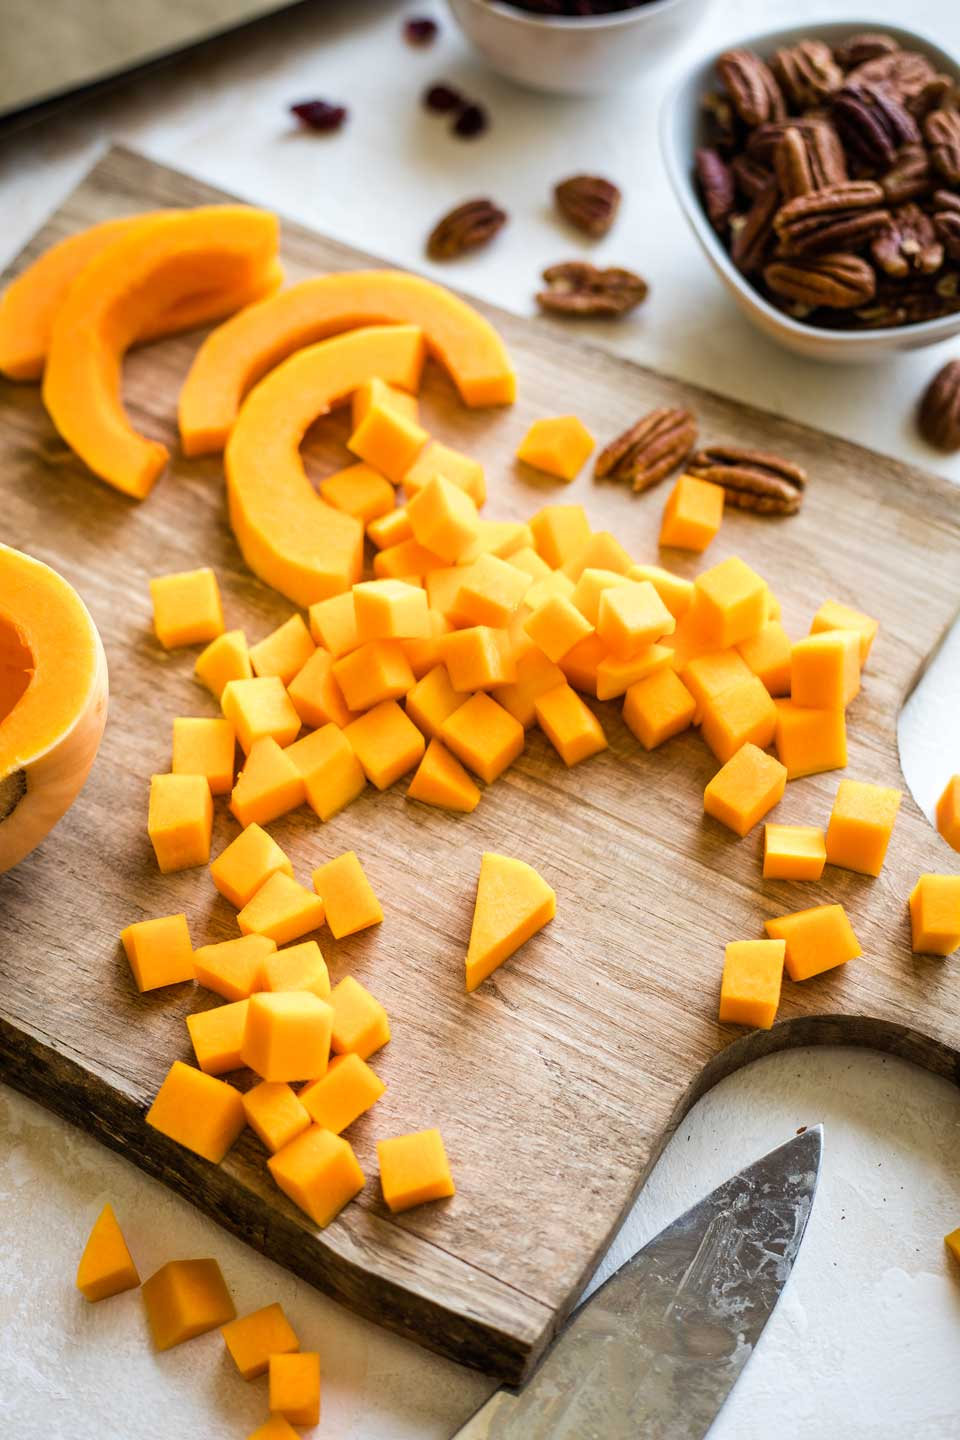 butternut squash being cut and chopped on cutting board, with one triangular piece prominently at middle of cutting board